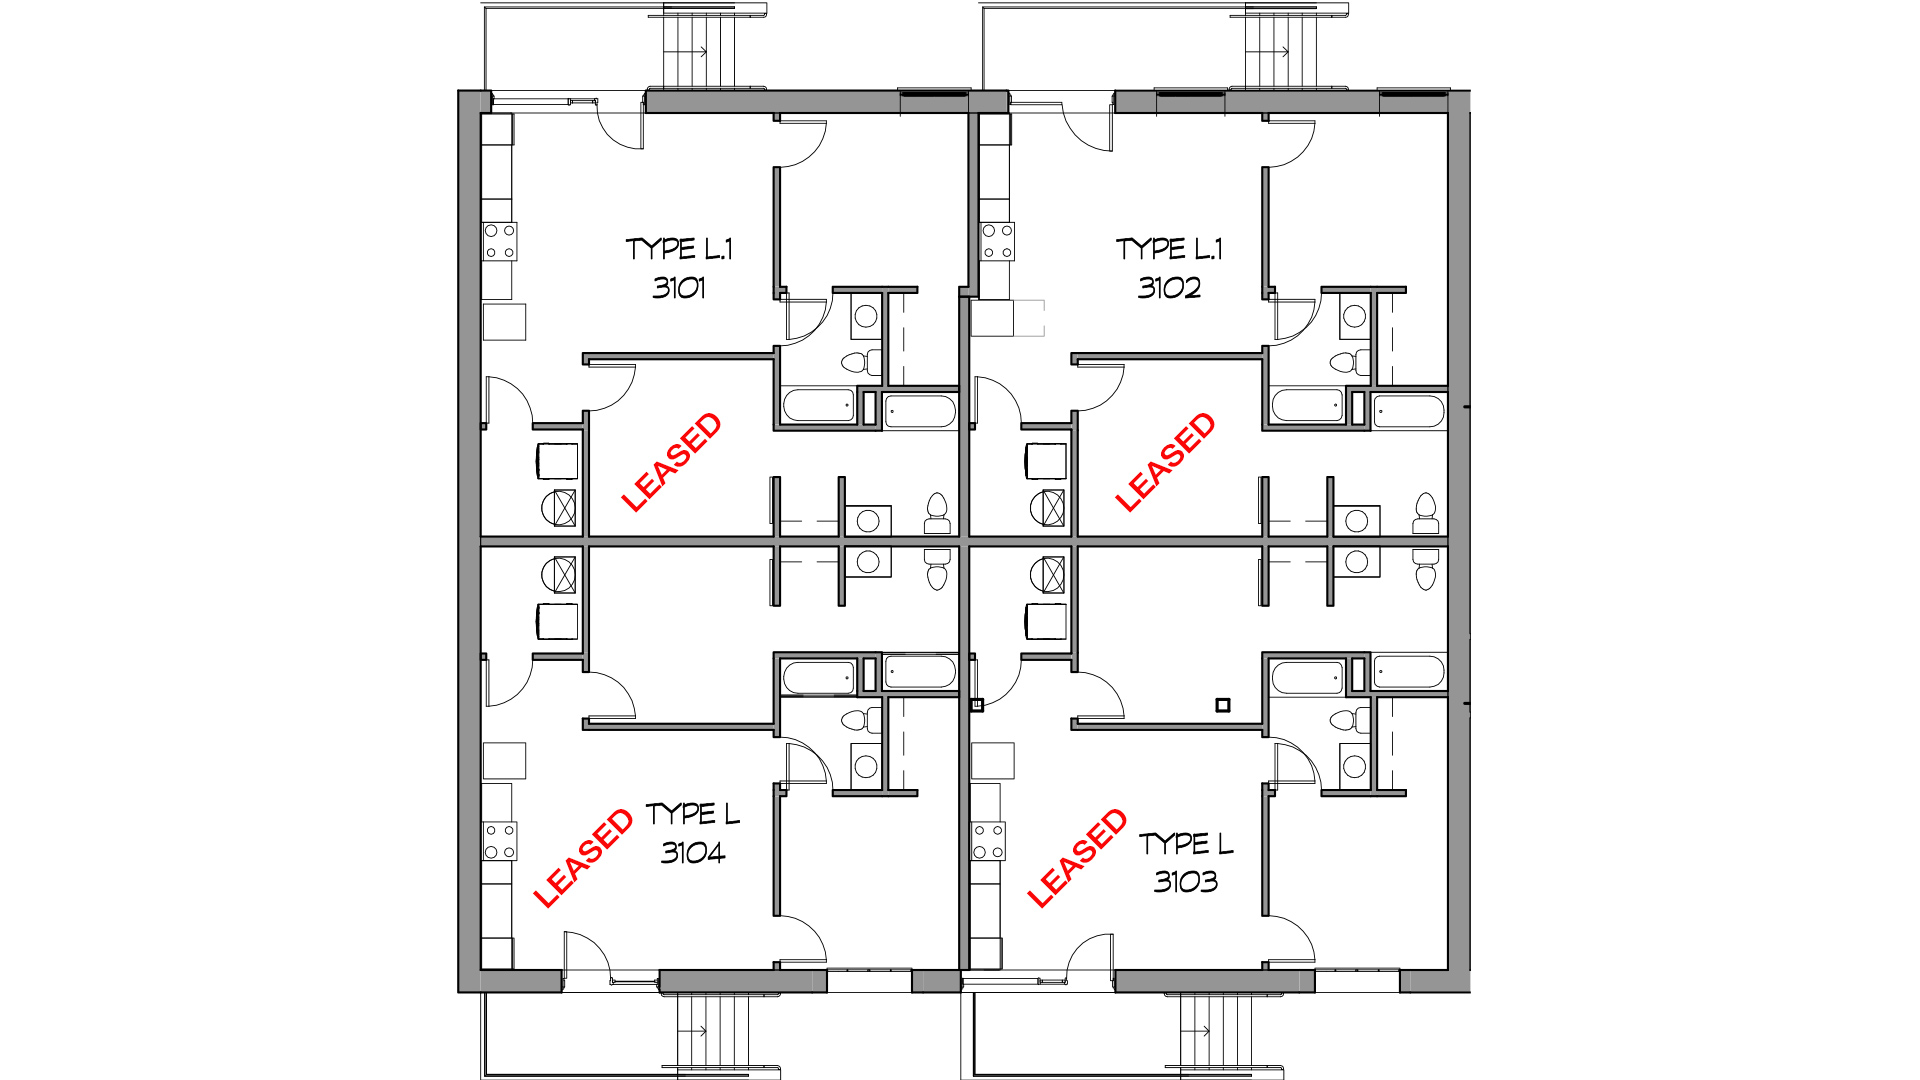 Home Plans together with The Caboose 400 Sq Ft Wheelhaus Cabin in addition 360710251375855499 further 400 Sq Ft House Plans further Karens Tiny Turtle House. on caboose home floor plans